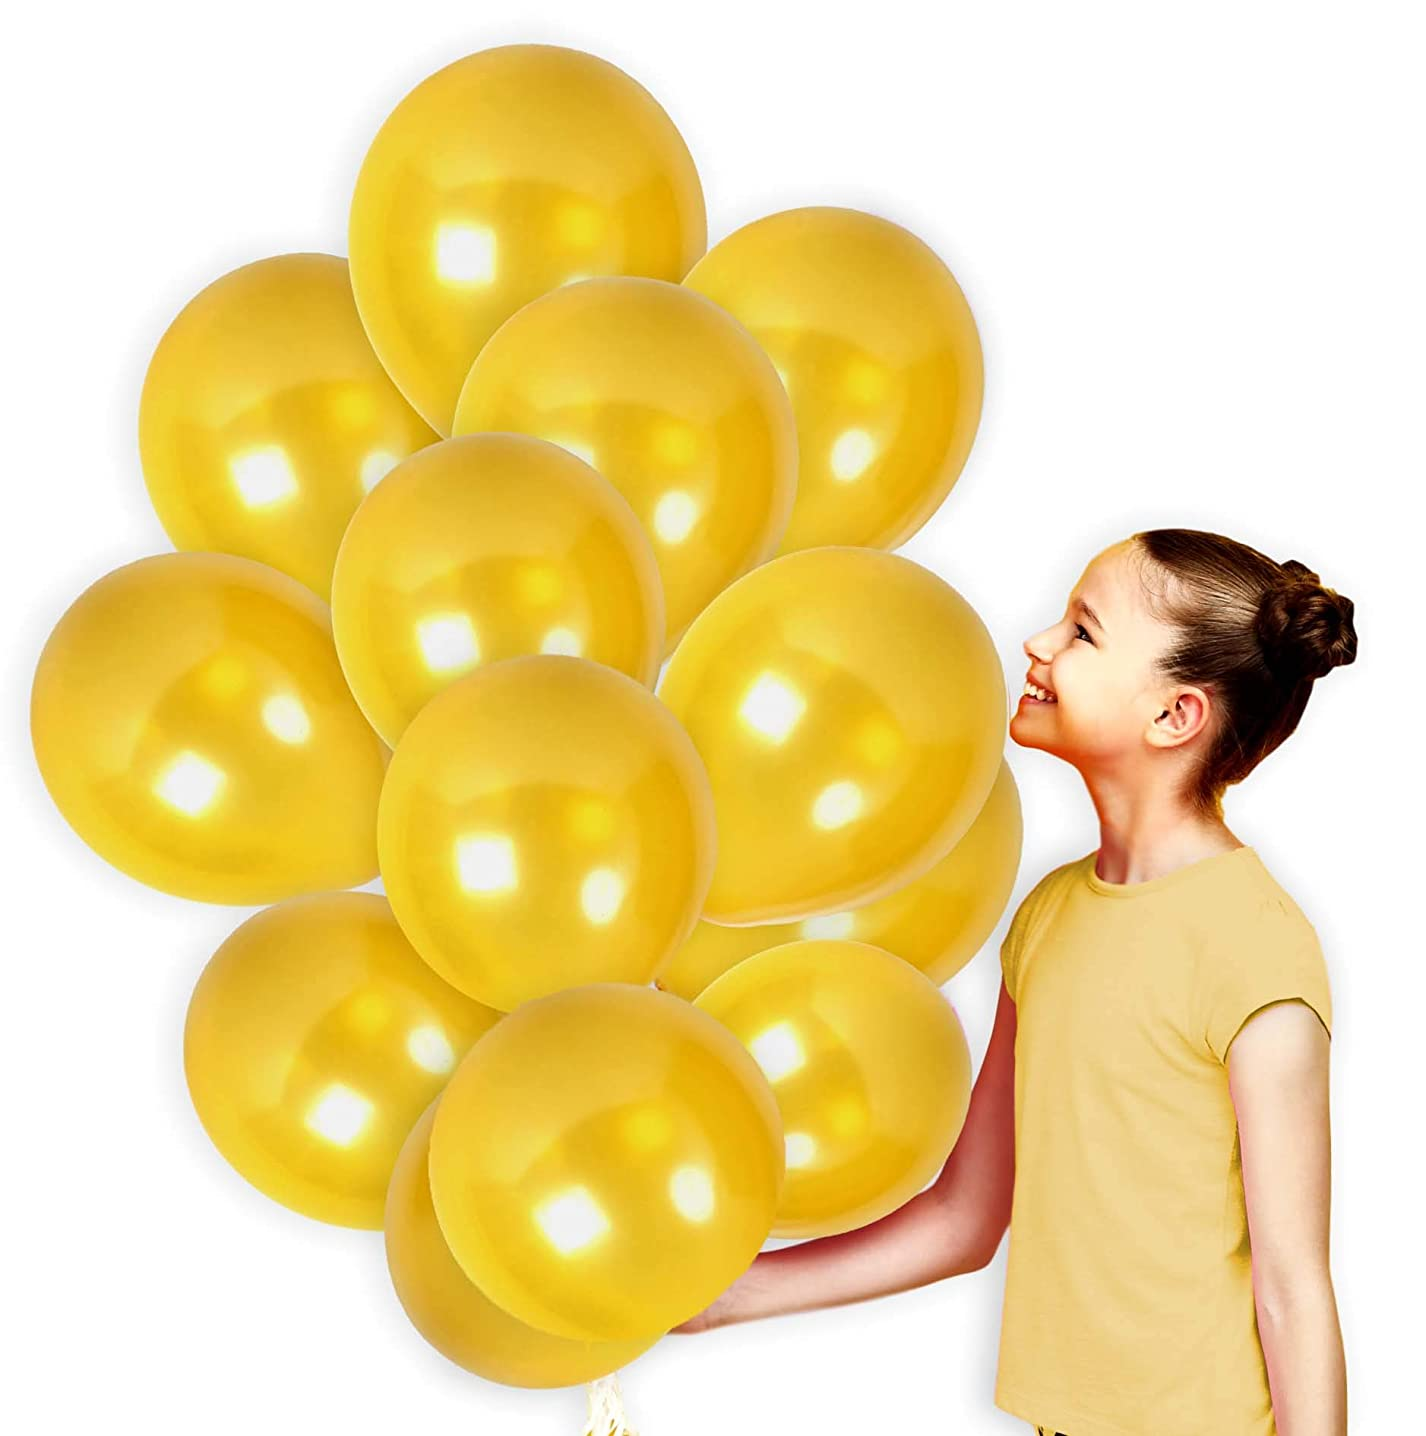 Gold Metallic Latex Balloon Pack of 36 Party Kit for Bachelorette Party Baby Shower Wedding Arch Graduation Supplies